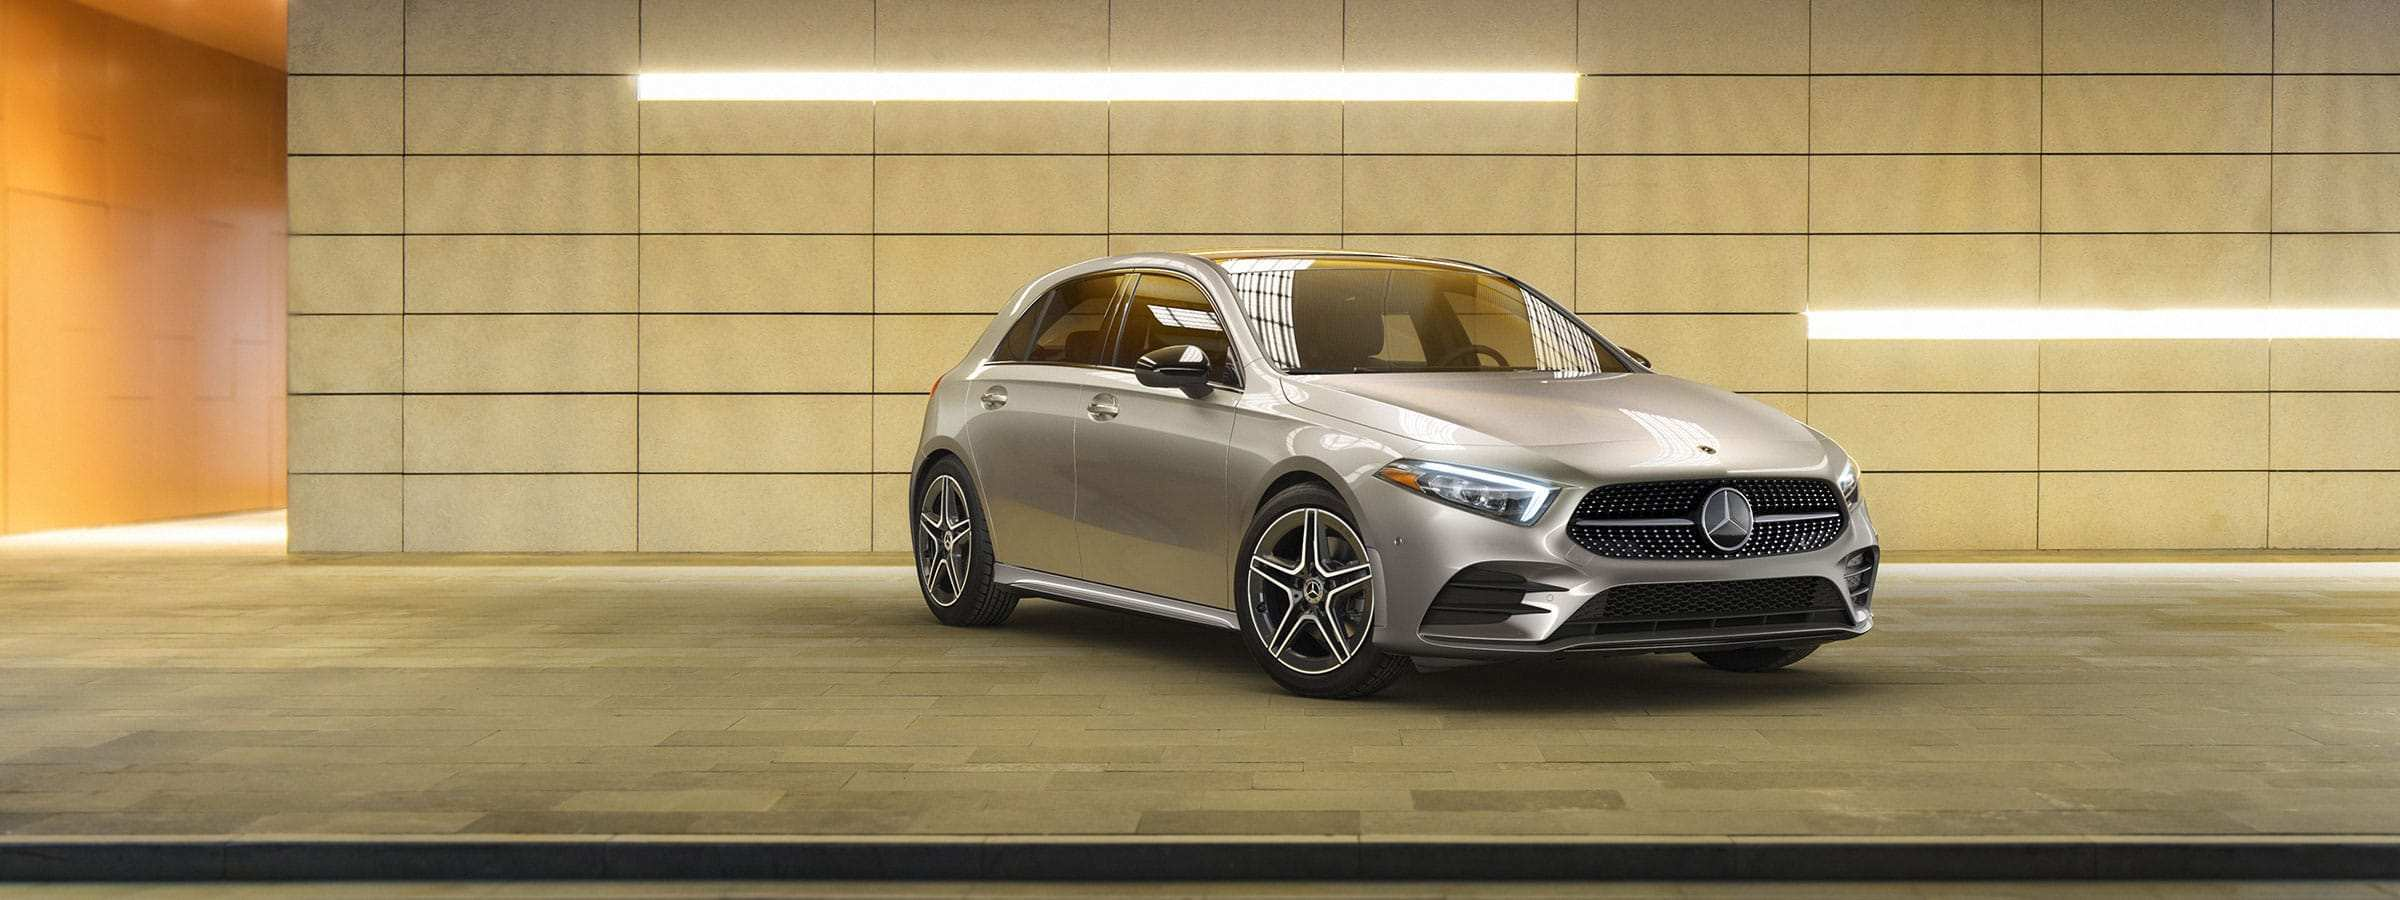 58 All New Mercedes 2019 A Class Picture by Mercedes 2019 A Class